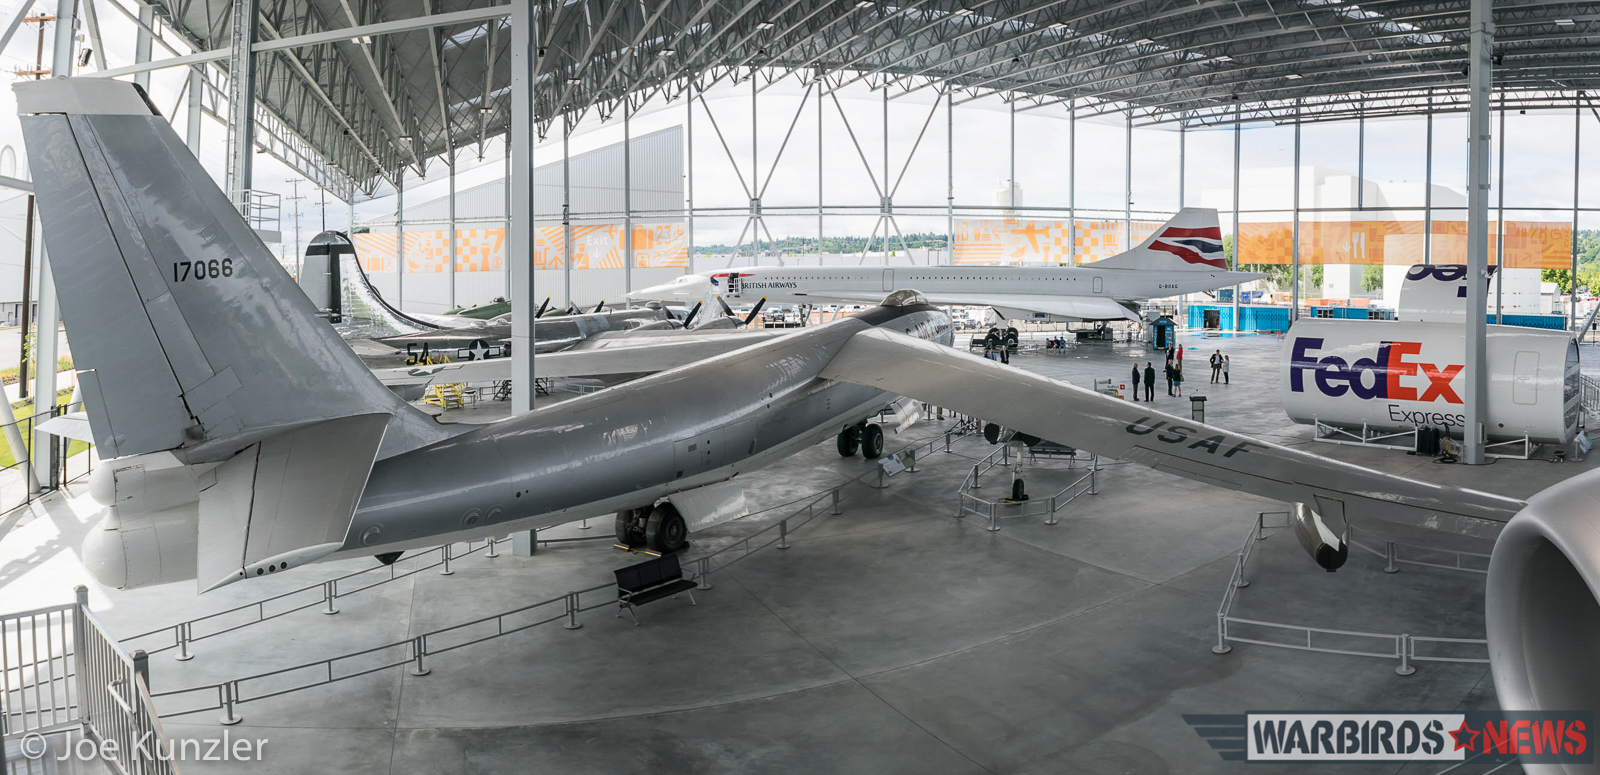 A panoramic view of the Museum of Flight Aviation Pavilion showing the Boeing B-47 in the foreground. (photo by Joe Kunzler)